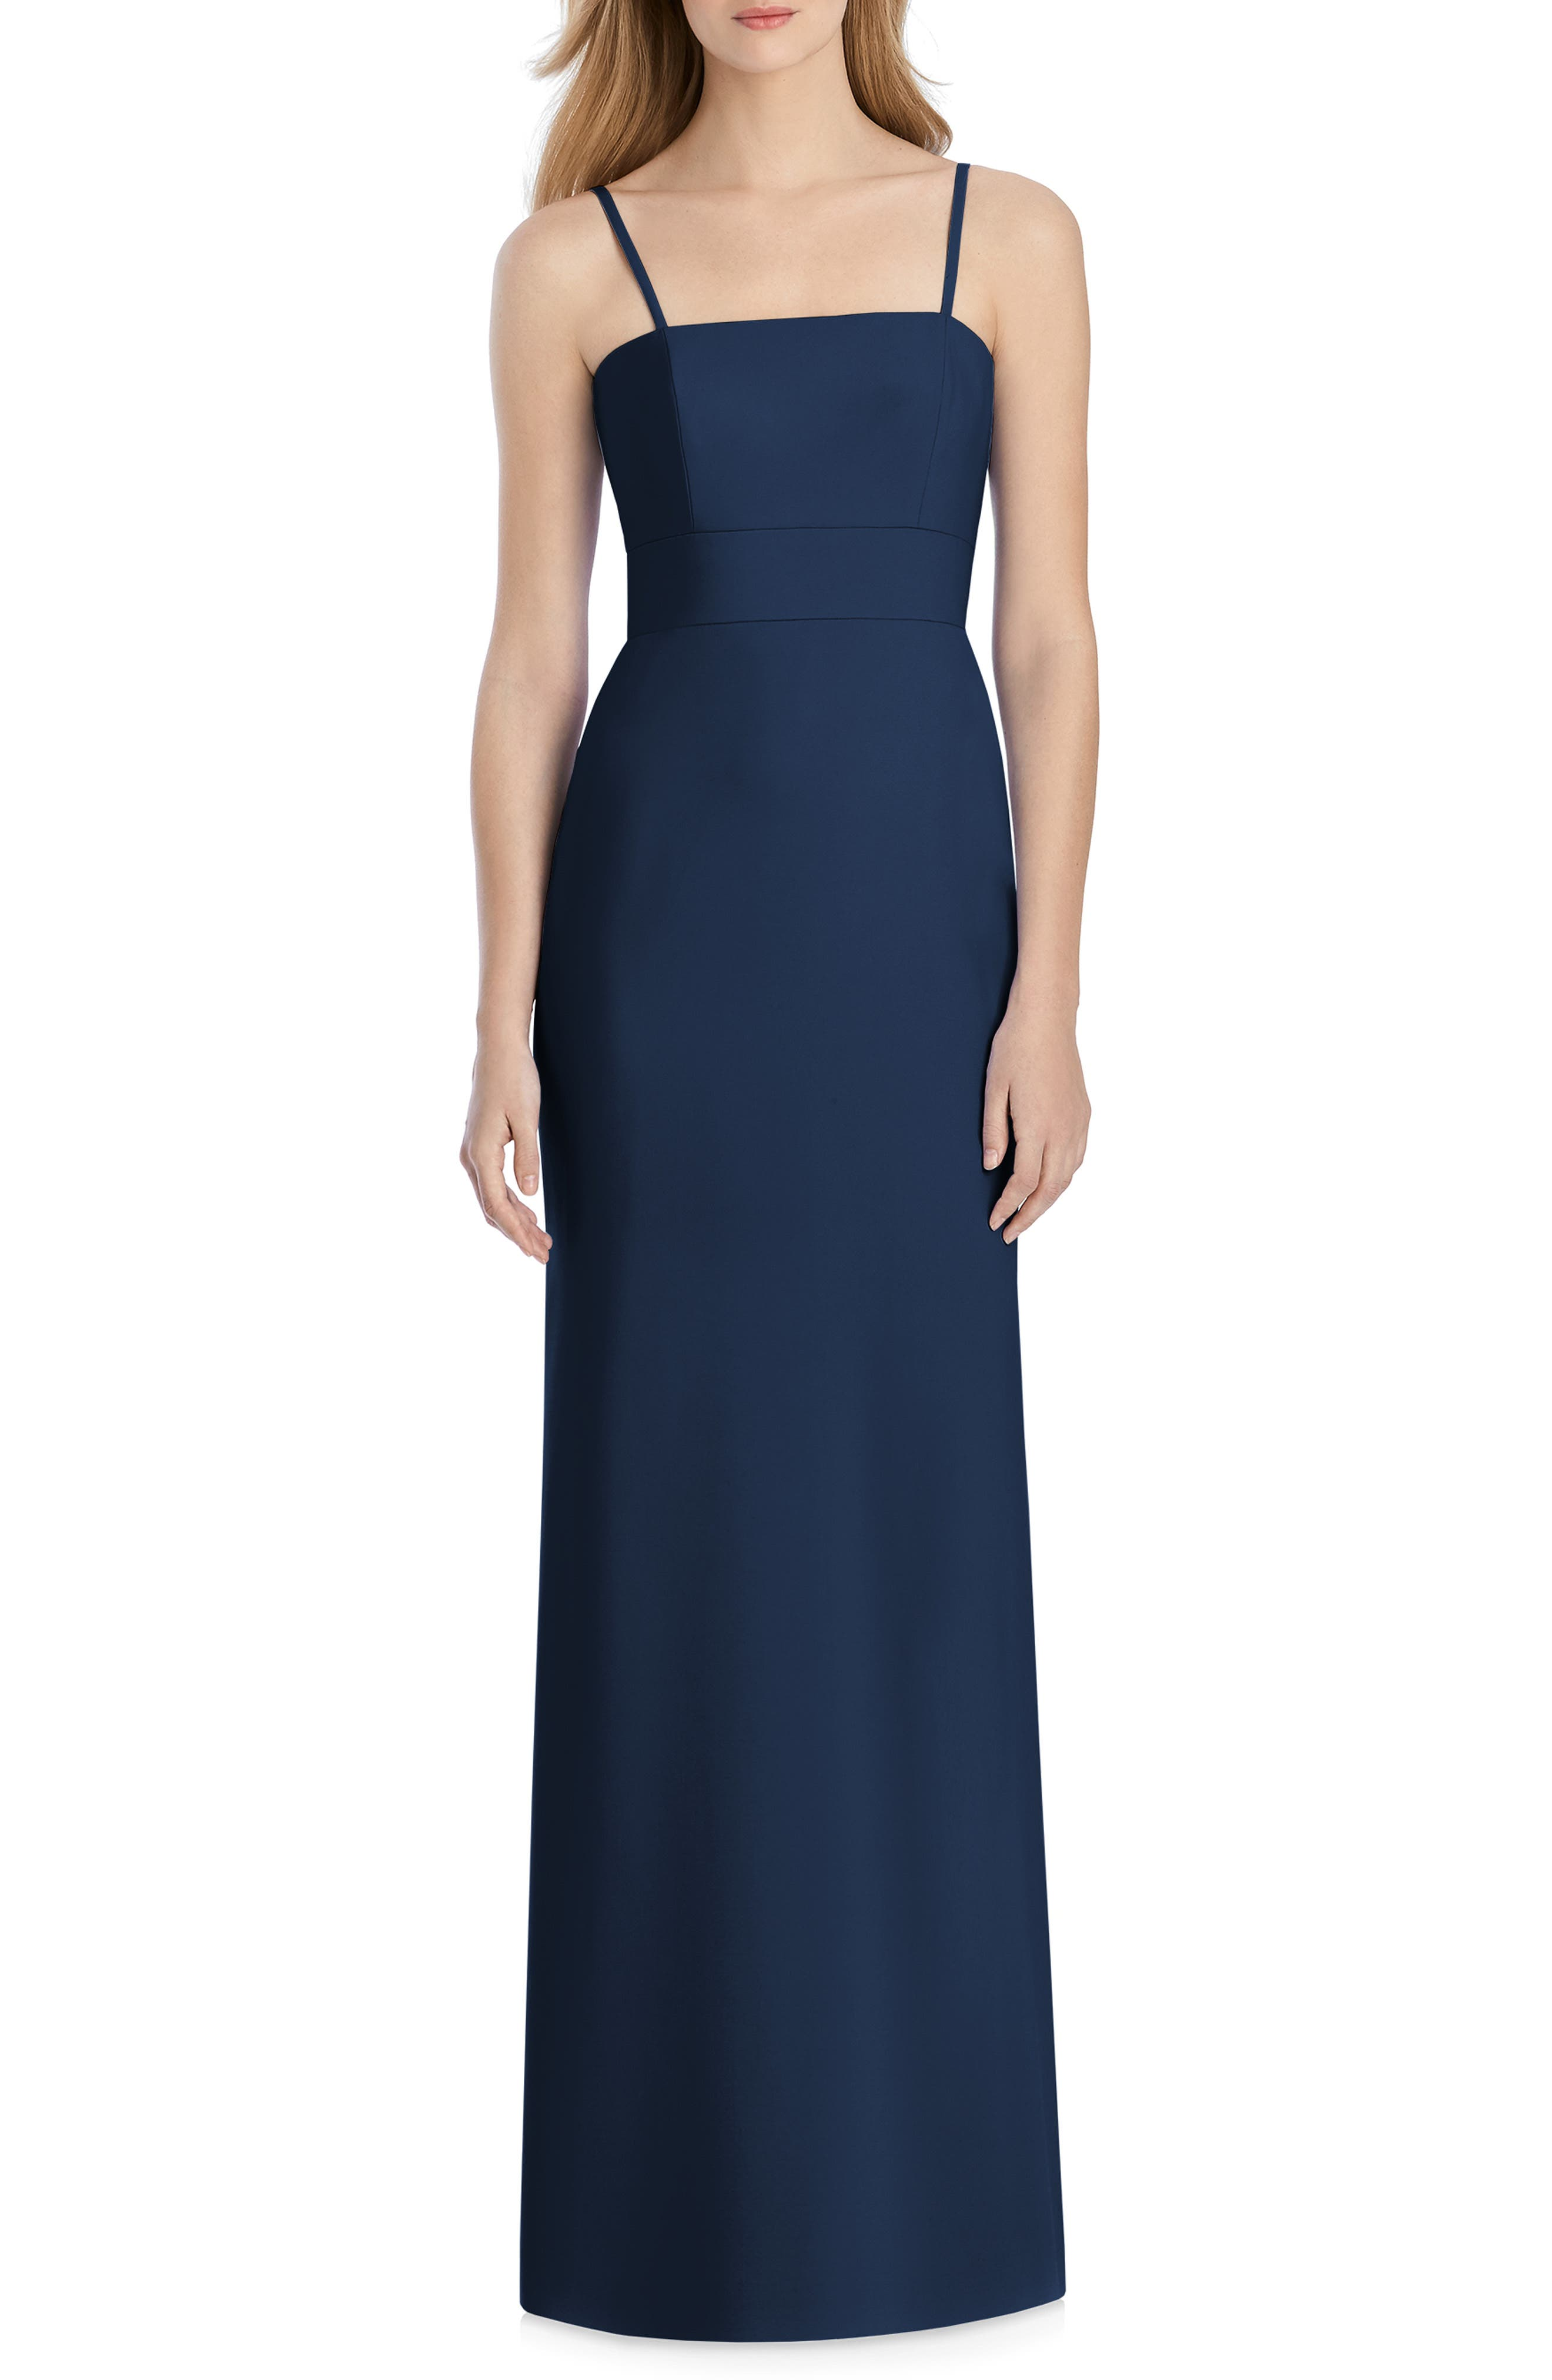 Lela Rose Bridesmaid Bow Back Crepe Gown, Blue